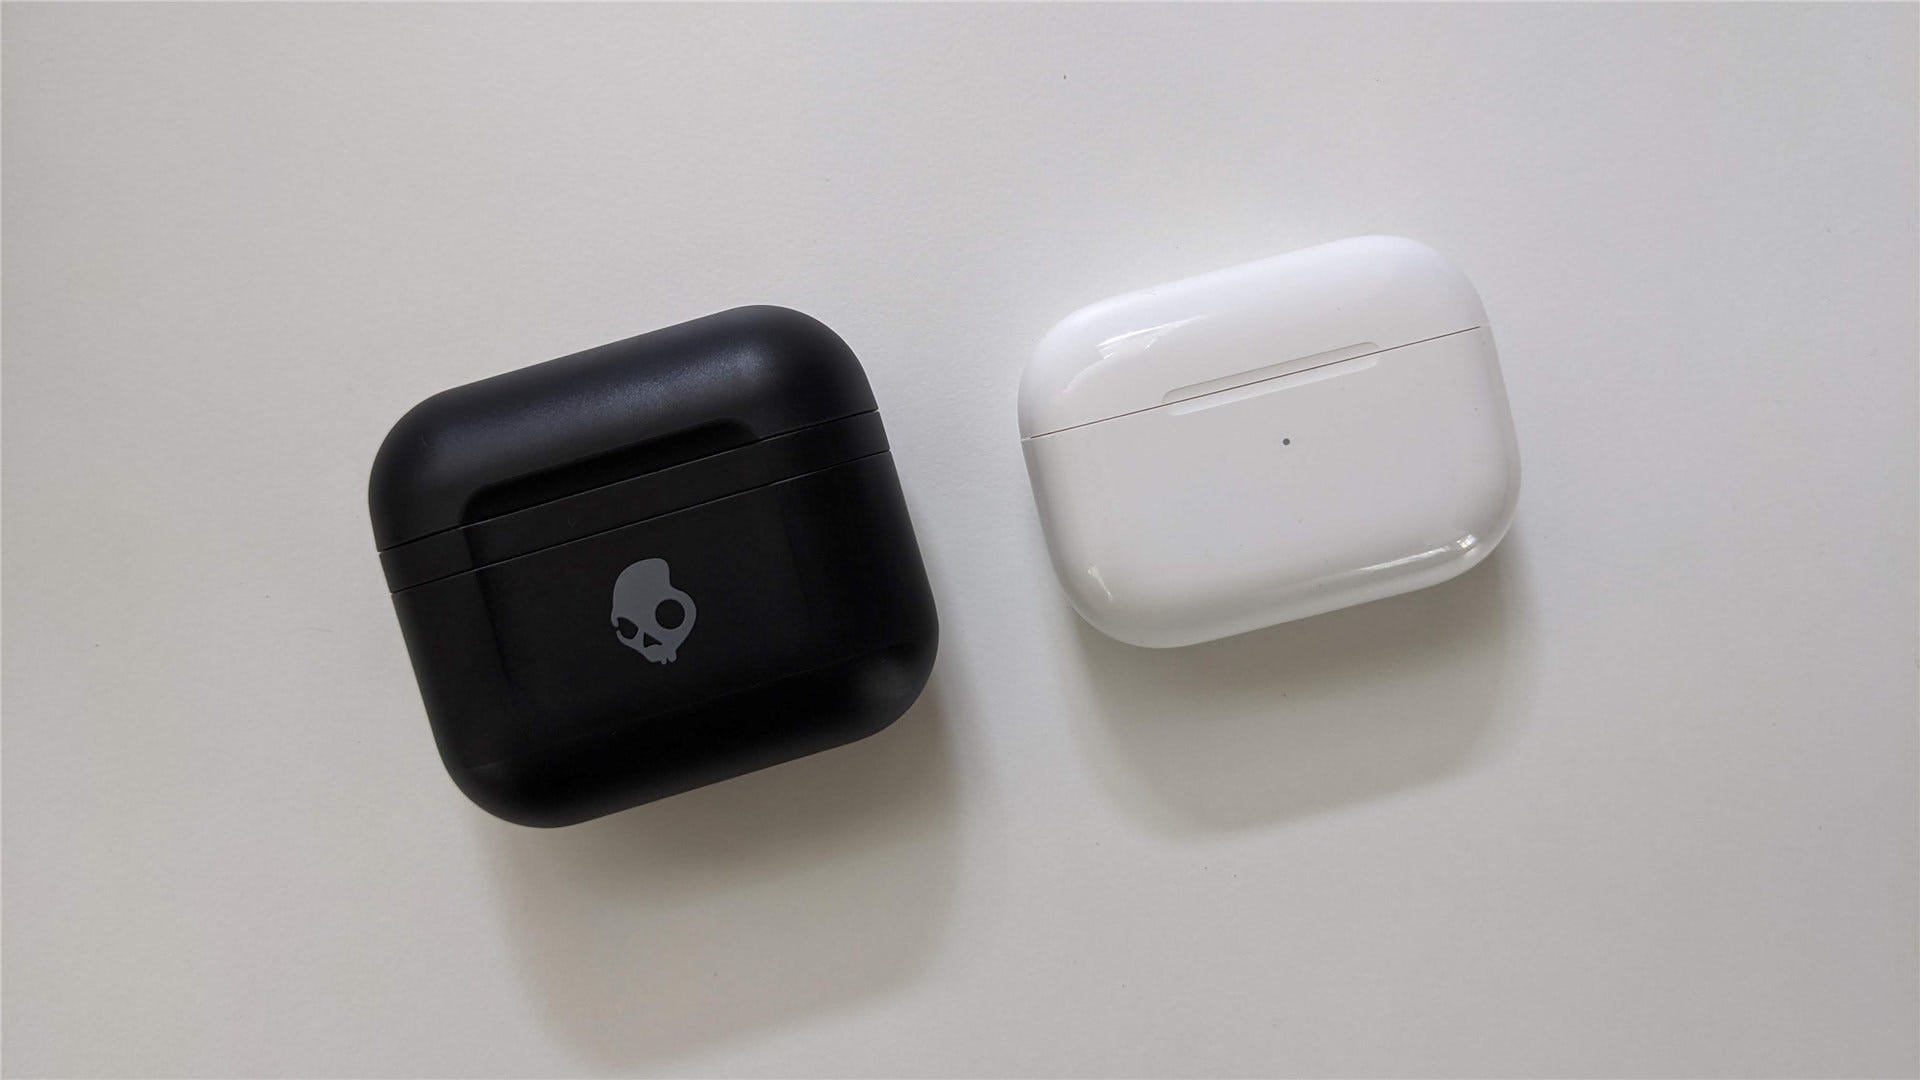 The Skullcandy Indy Fuel case next to the AirPods Pro case